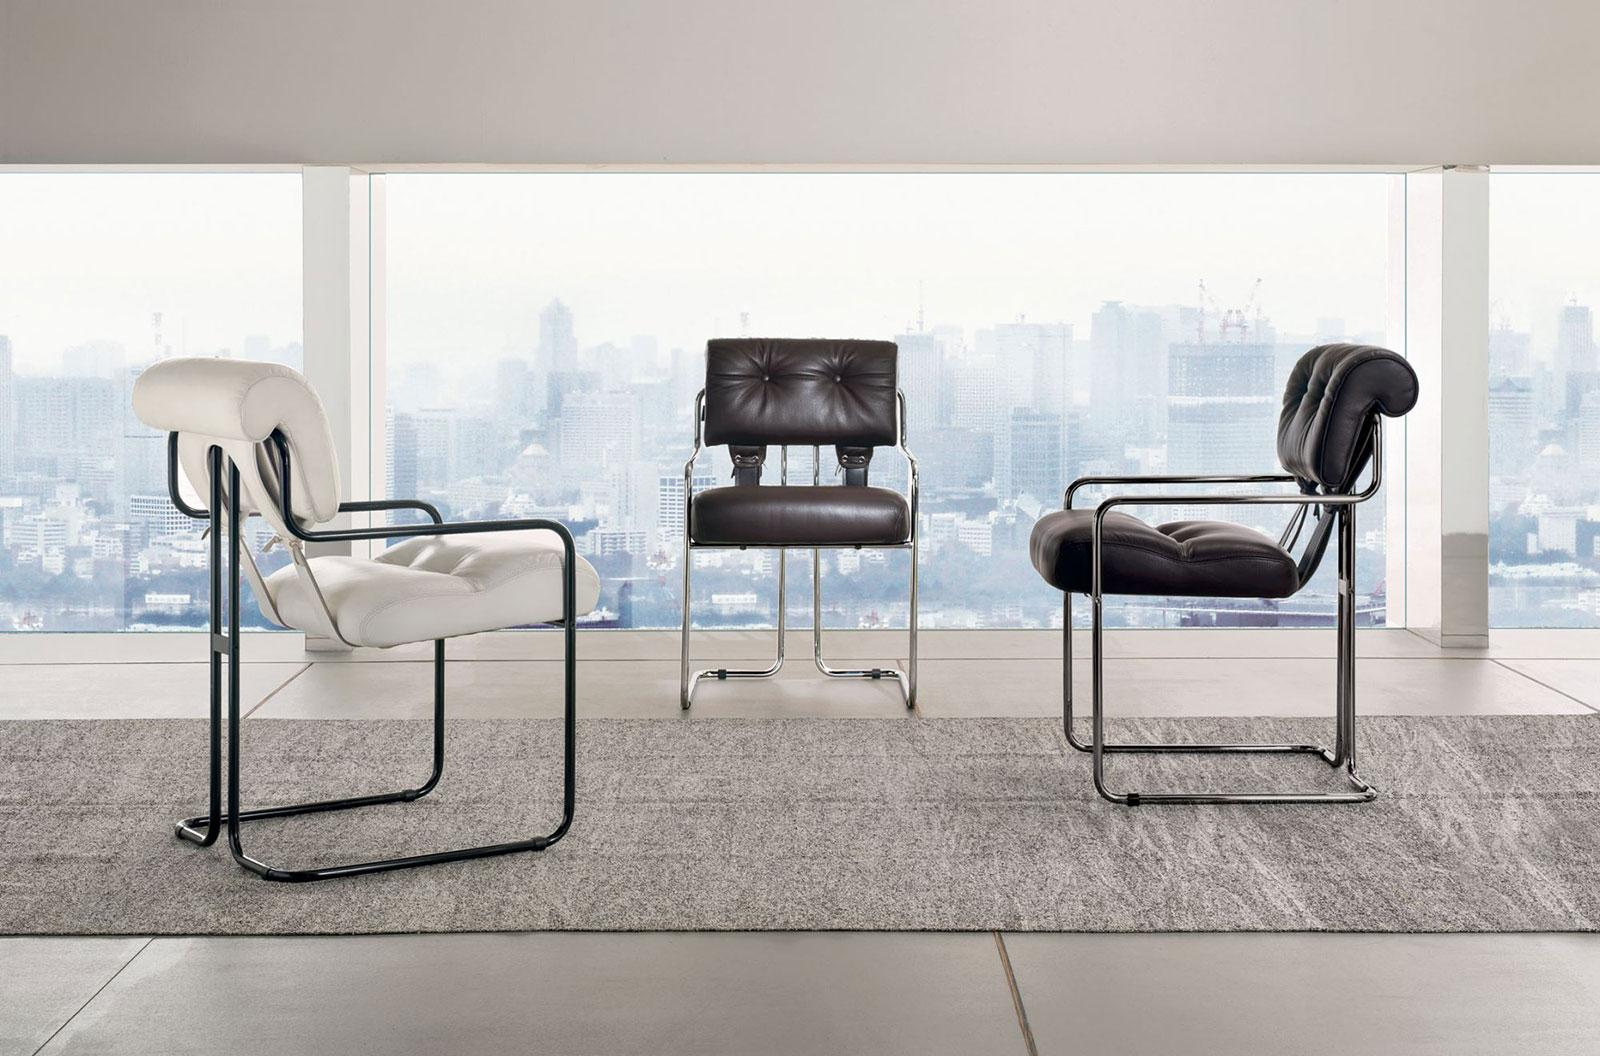 Tucroma Padded Chrome Frame Leather Covered Chair Shop Online Italy Dream Design